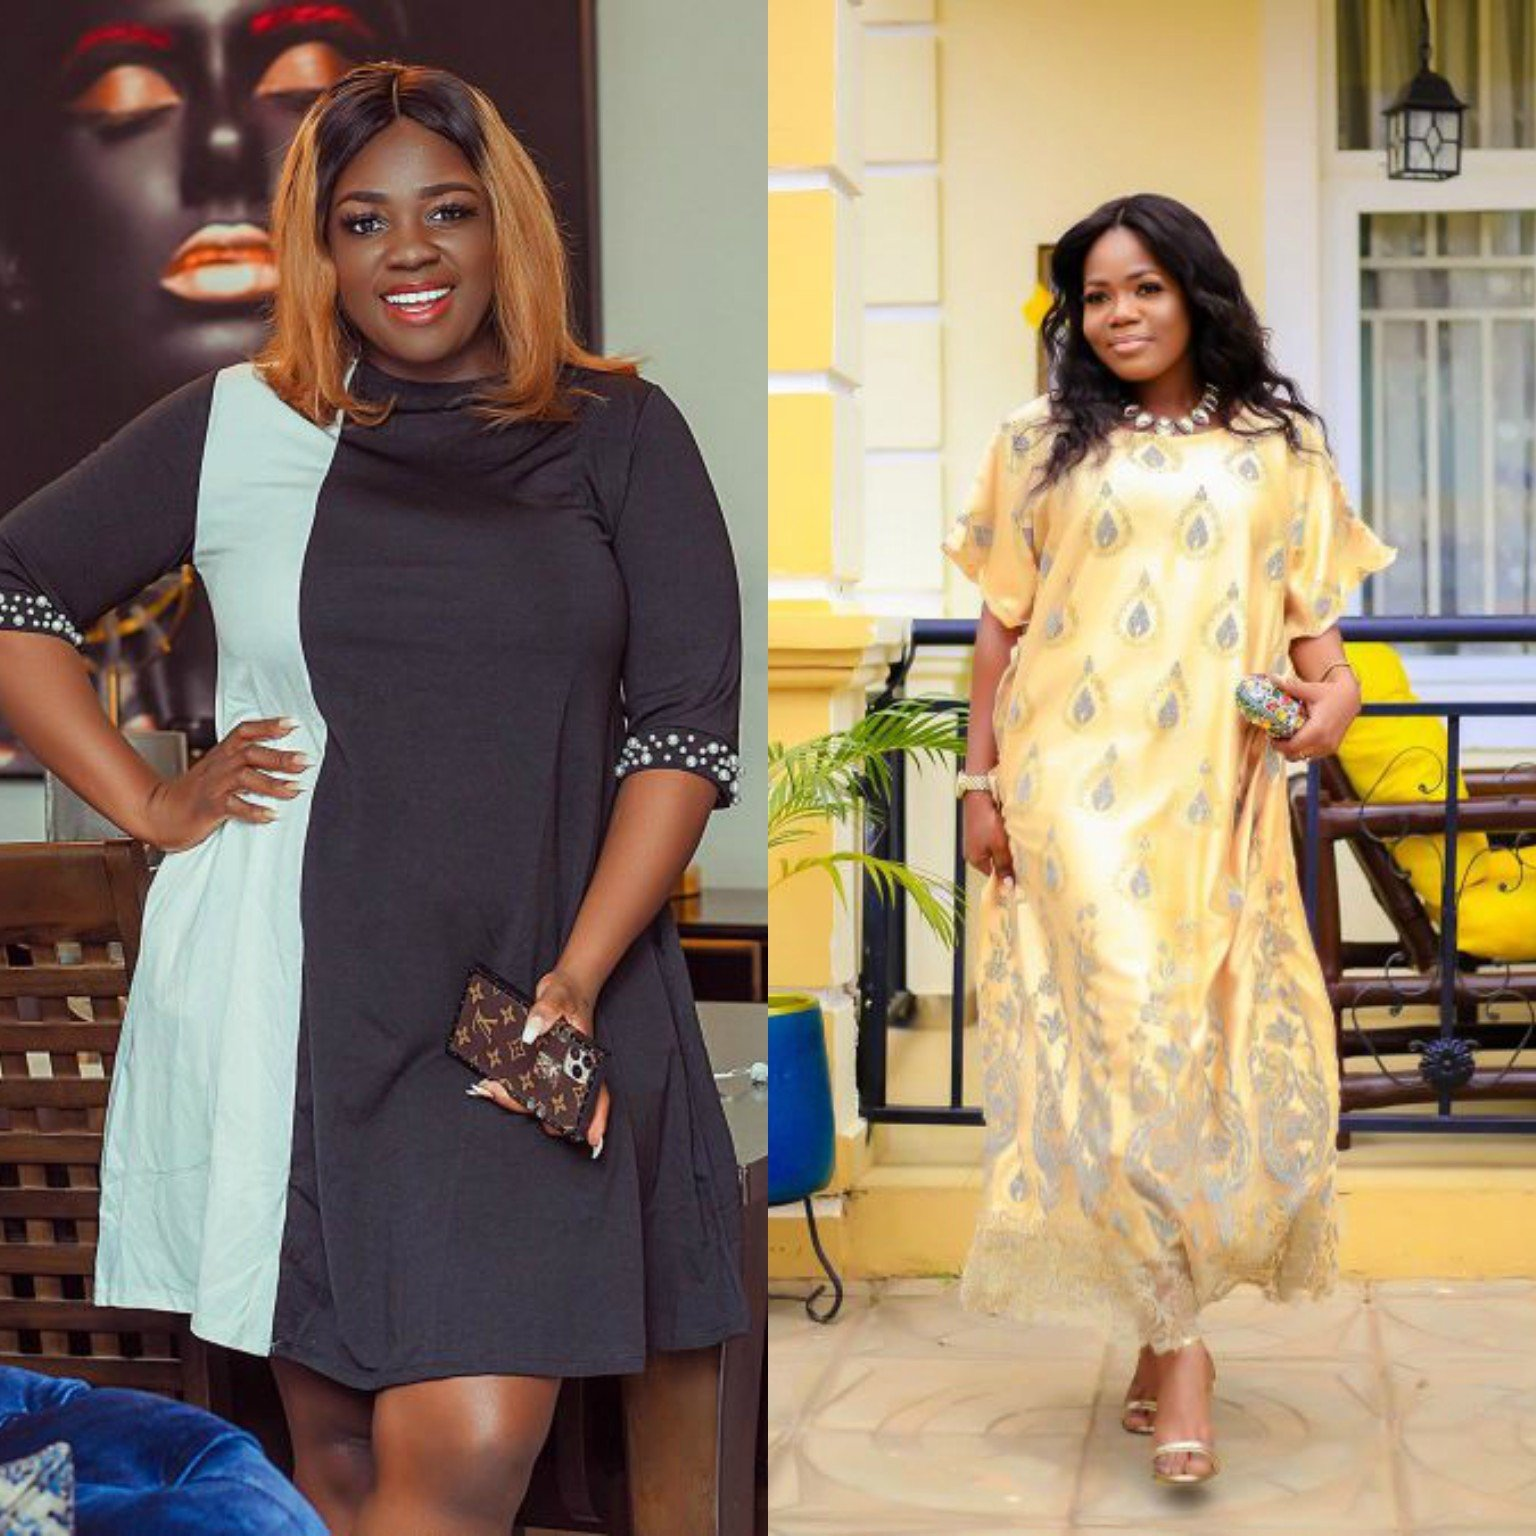 Photo of Tracey-Mzbel Squabble: Pundits Reprimand Celebrities